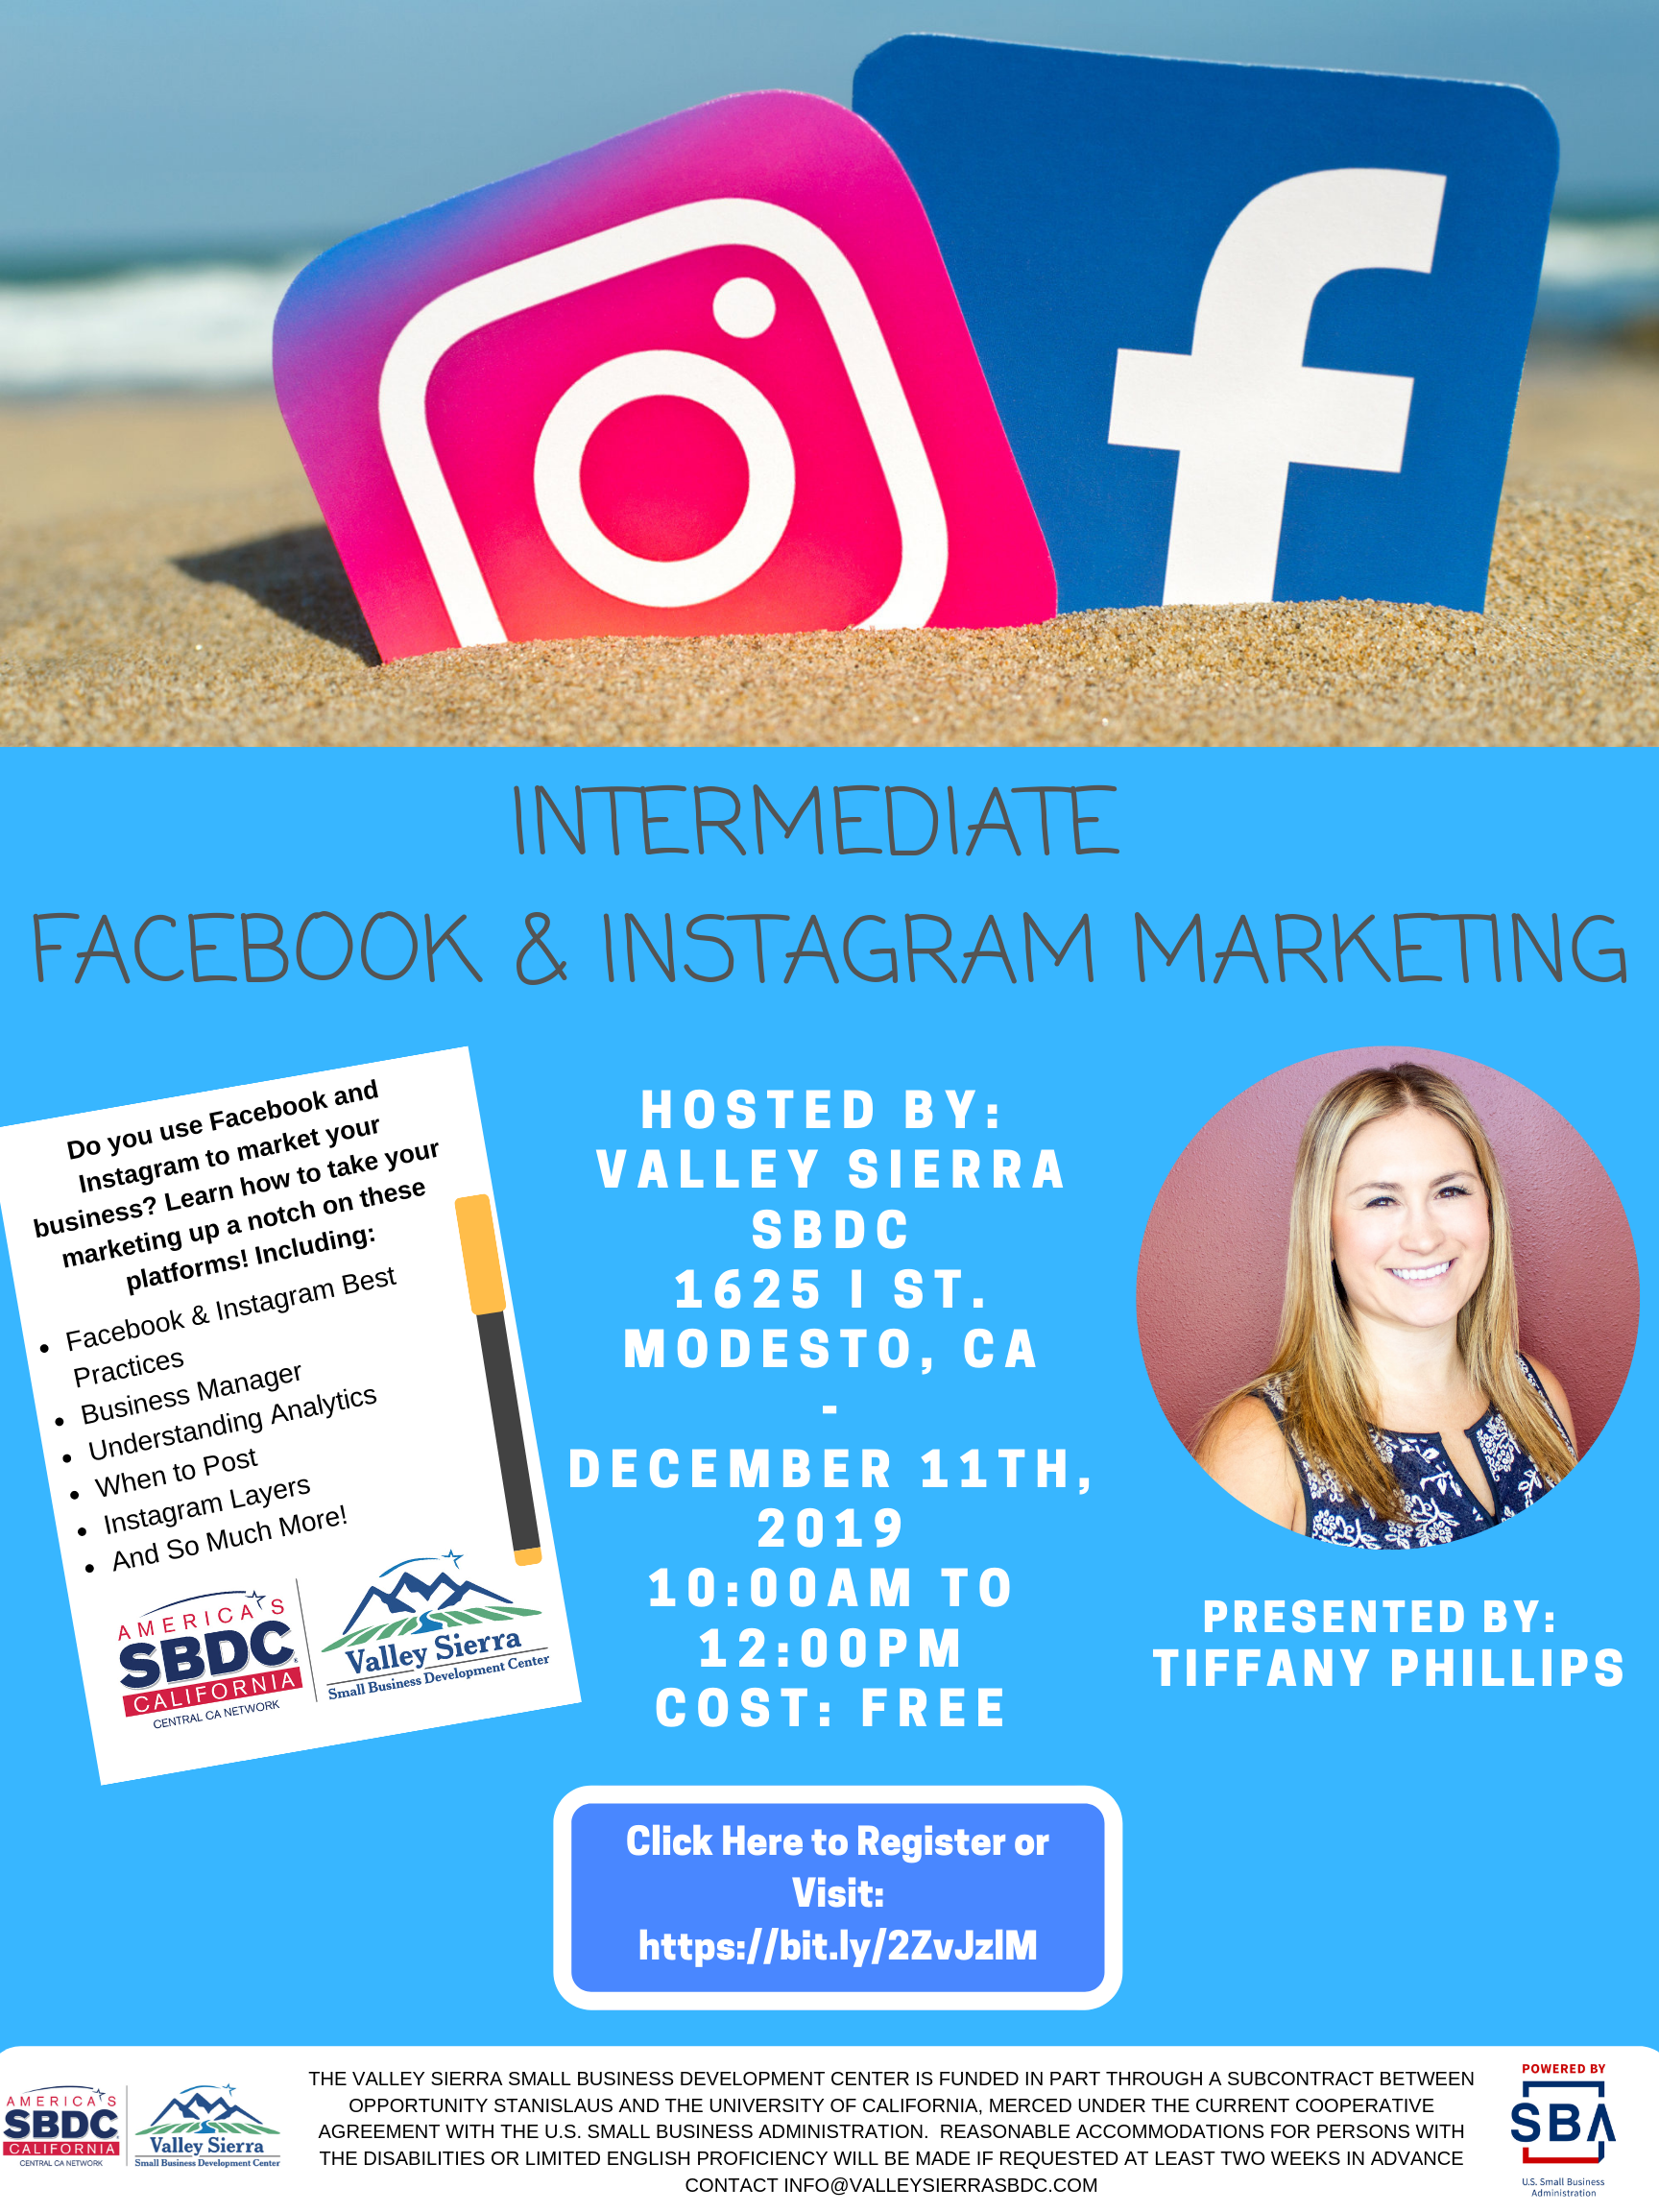 Event Flyer, INTERMEDIATE FACEBOOK/INSTAGRAM MARKETING  Do you use Facebook and Instagram to market your business? Learn how to take your marketing up a notch on these platforms! Including: Facebook & Instagram Best Practices Business Manager Understanding Analytics When to Post Instagram Layers And So Much More! Hosted by Valley Sierra SBDC, 1625 I Street, Modesto, CA. December 11th, 2019, 10:00am to 12:00pm. Cost is Free!